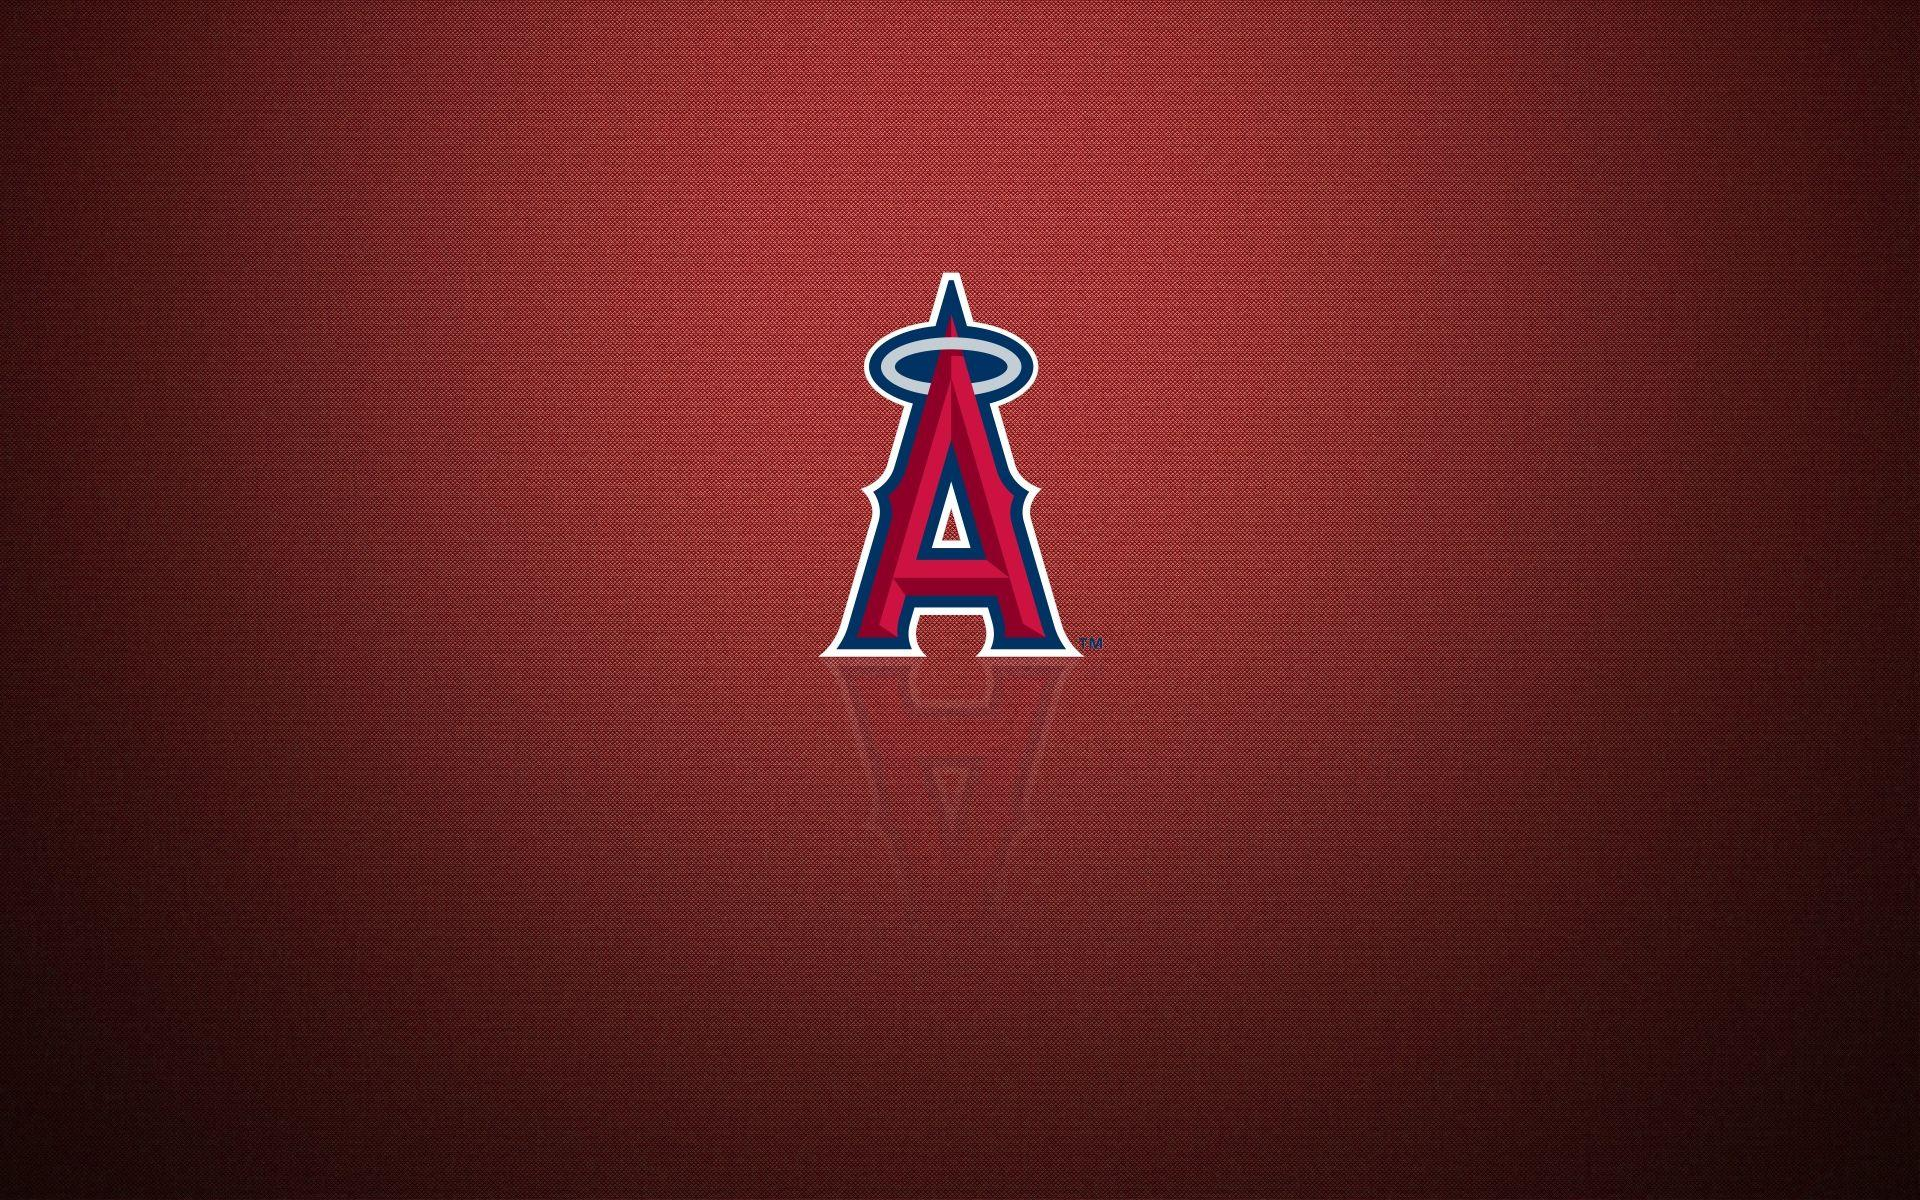 Los Angeles Angels wallpapers with logo – Logos Download